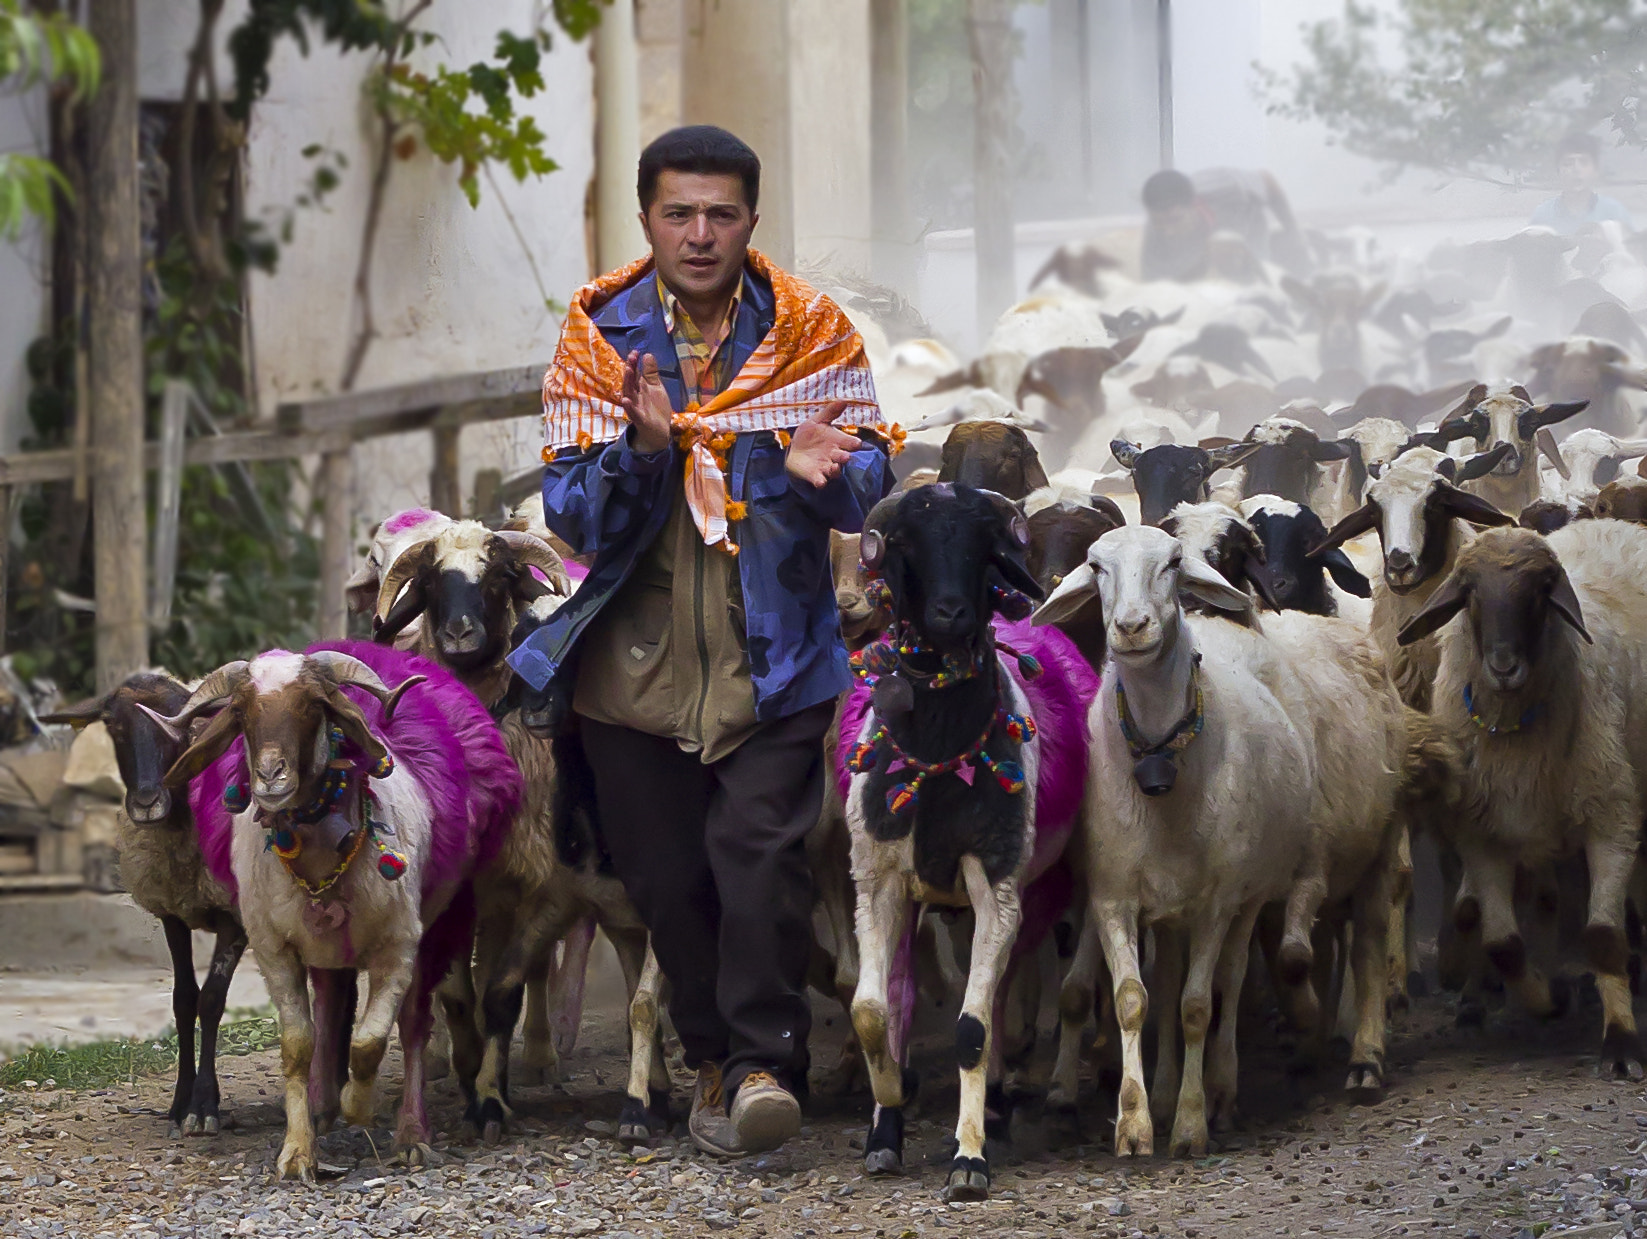 Photograph shepherd by Taskin Sel on 500px